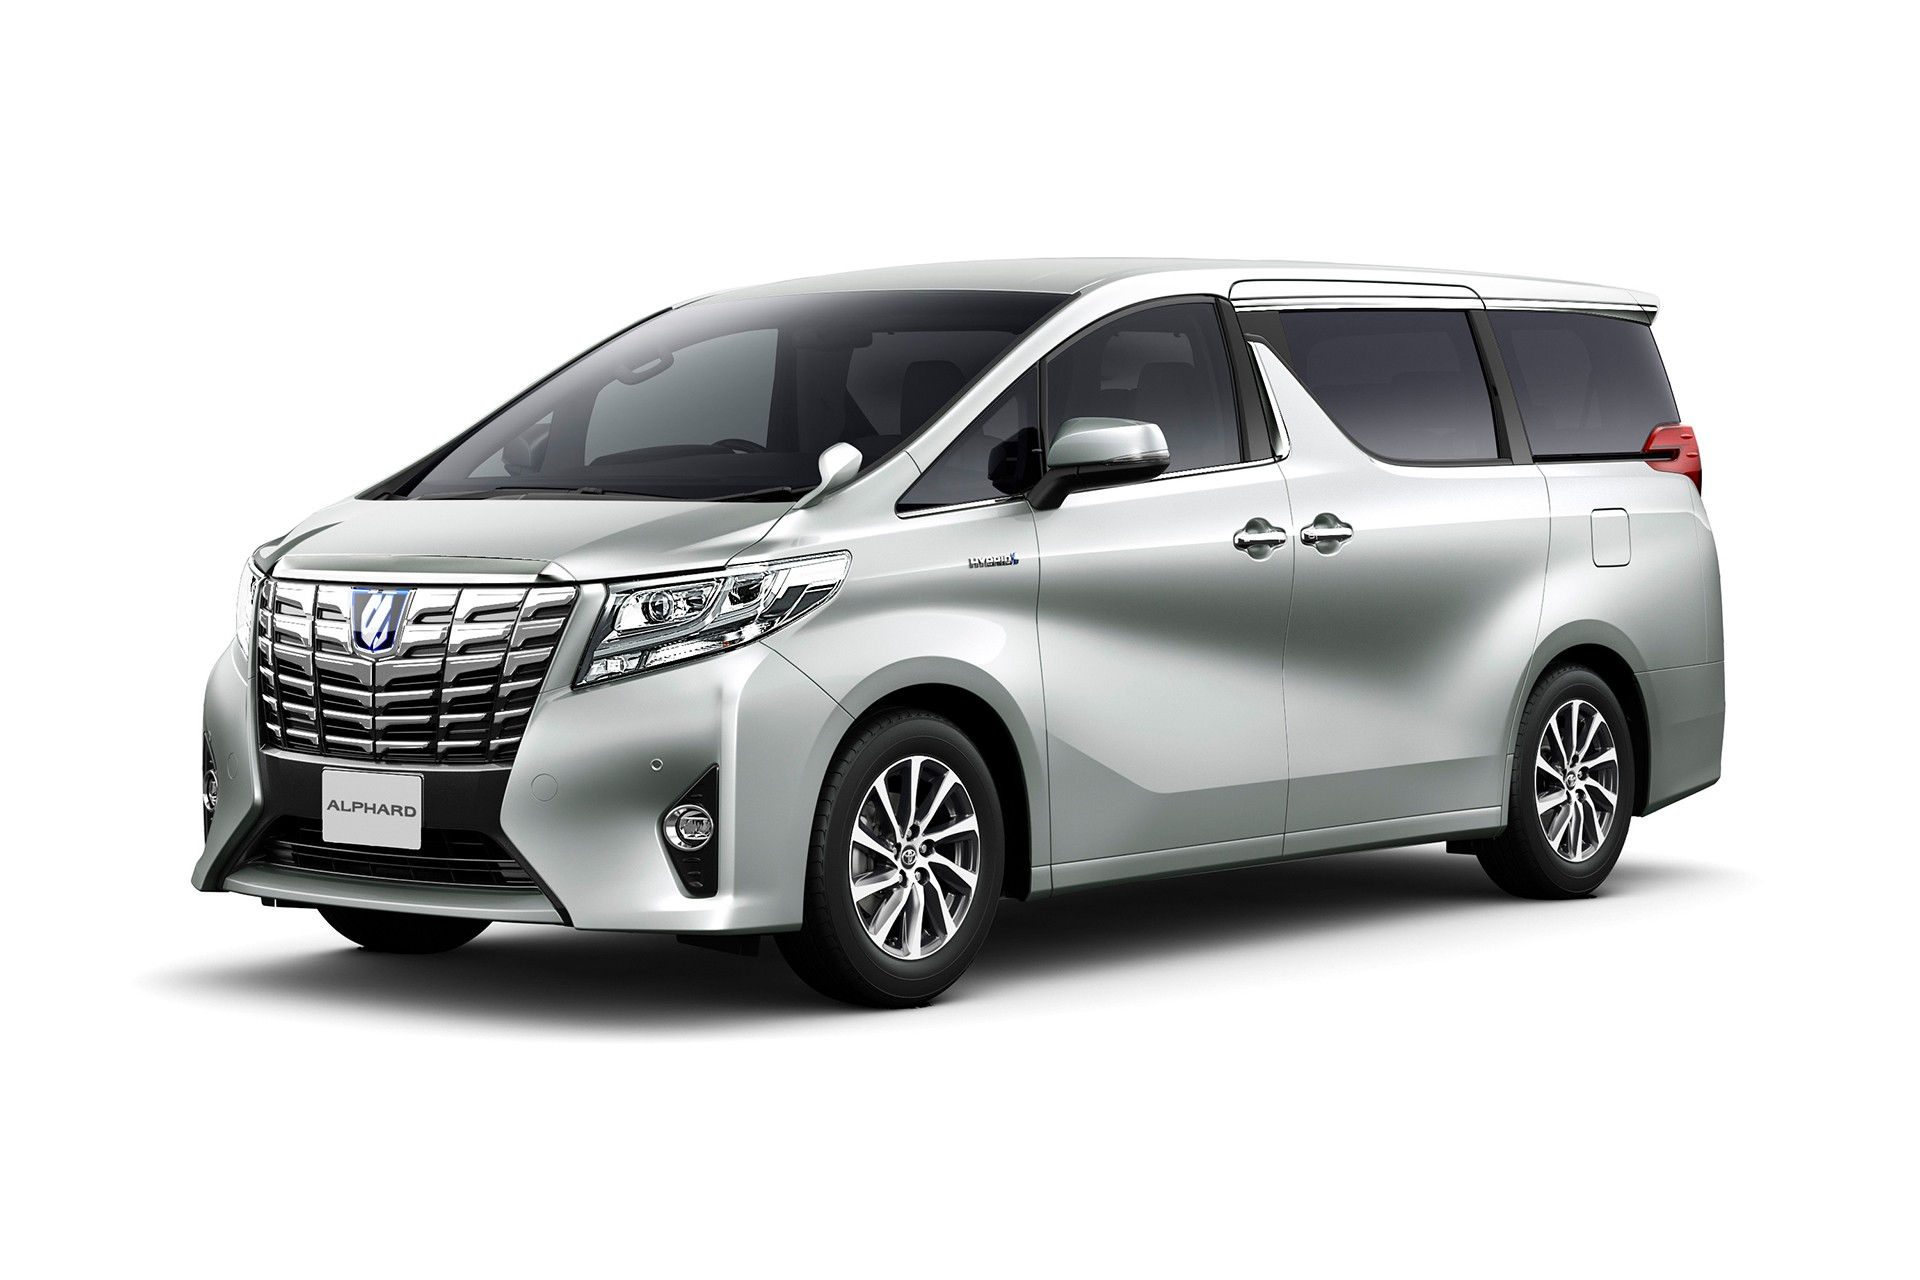 2014 Toyota Alphard Price and Specs Revealed in Malaysia ...